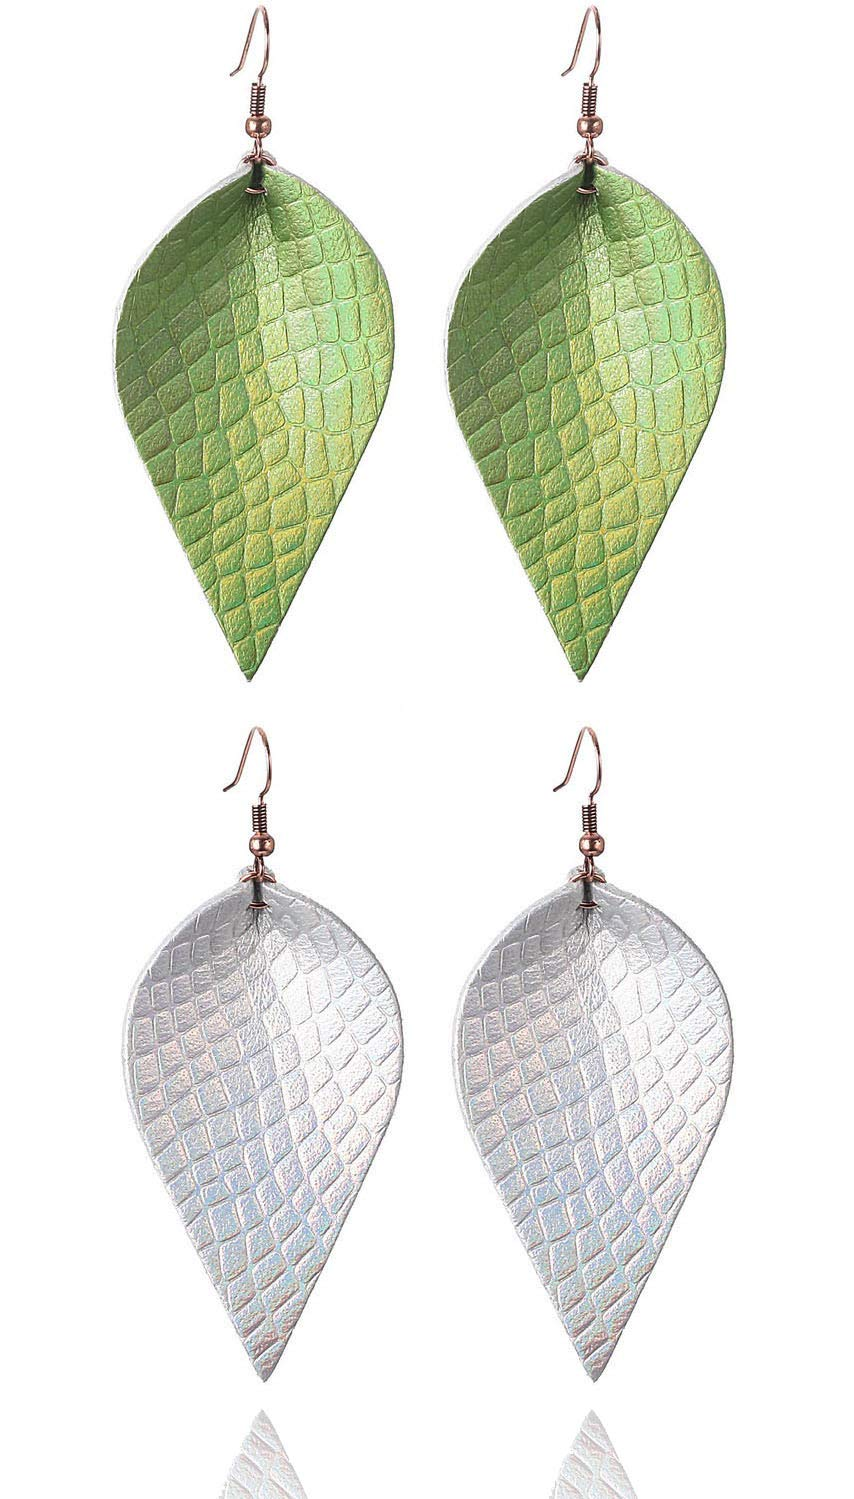 2 Pairs Joanna Style Light Cute Soft Leather Leaf Earrings Real Genuine Leather Earring Green Silver Color Inspired Joanna Style Large Not Faux Leather Feather Earing